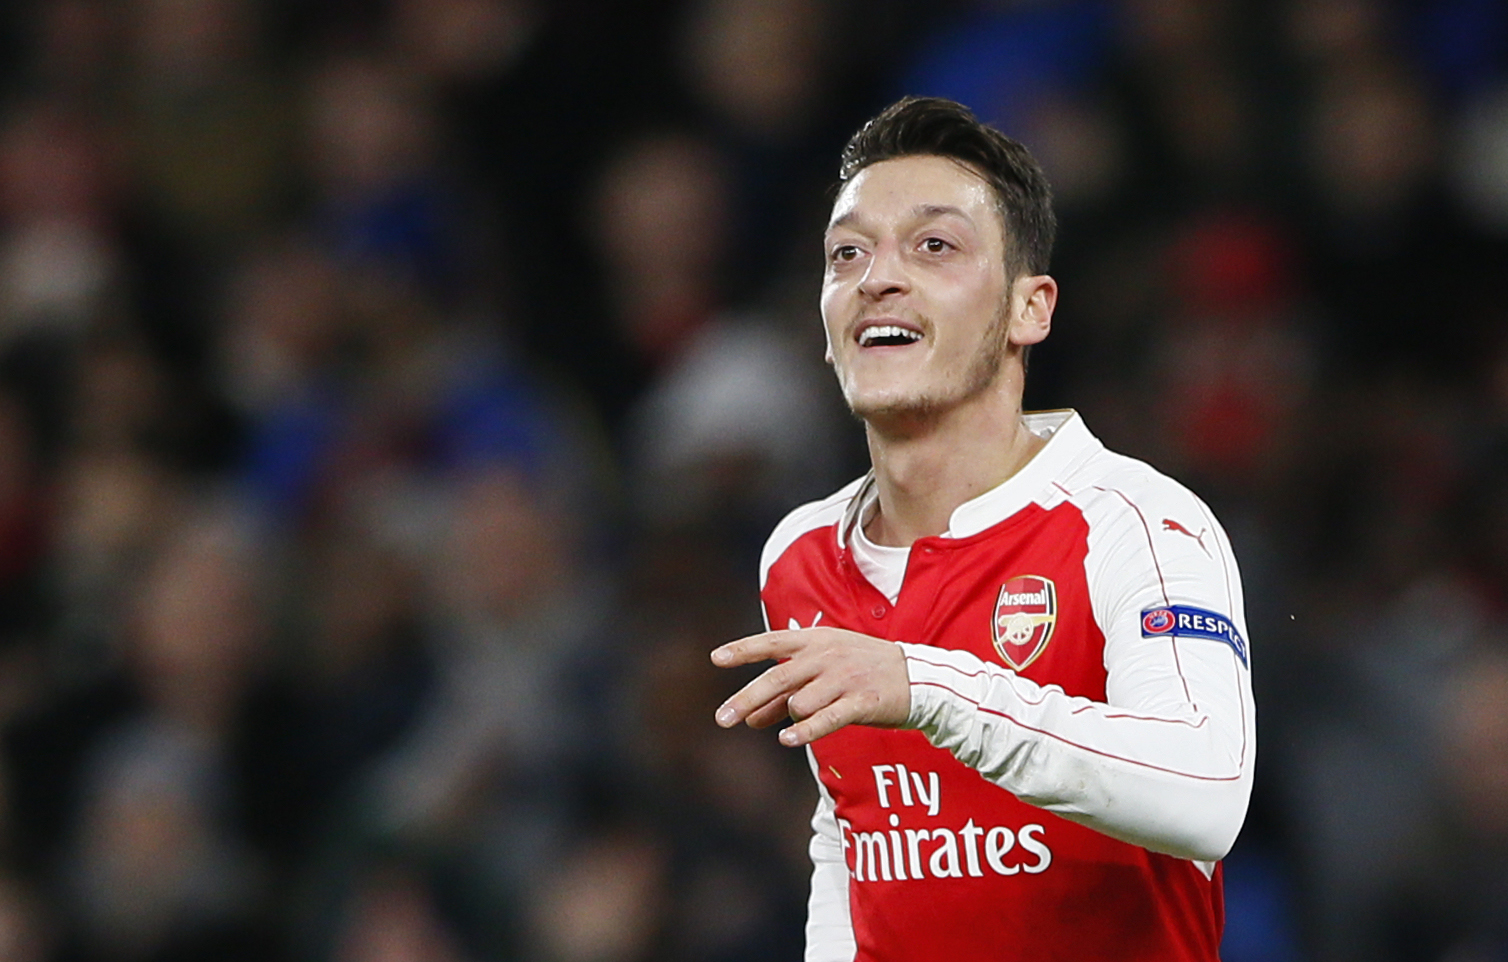 Mesut Ozil celebrates after scoring the first goal for Arsenal against Dinamo Zagreb during UEFA Champions League game at Emirates Stadium on November 24, 2015. Photo: Reuters